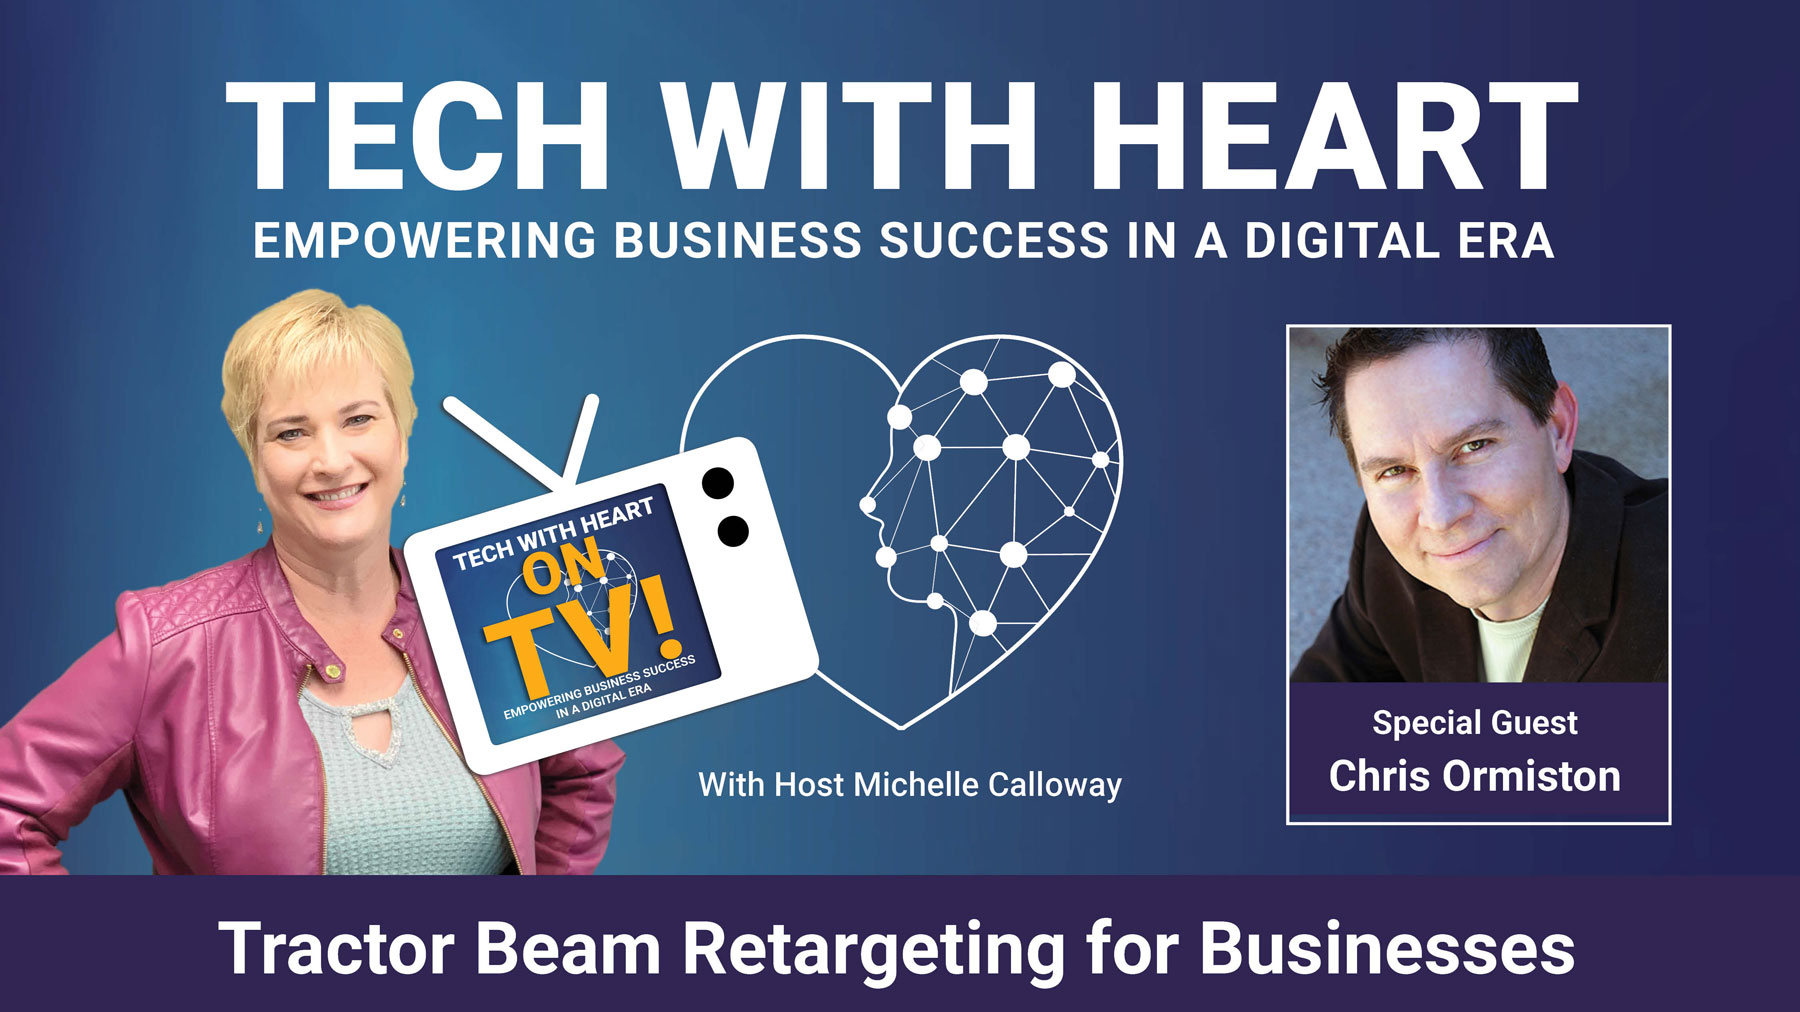 Tractor Beam Retargeting for Business with Chris Ormiston